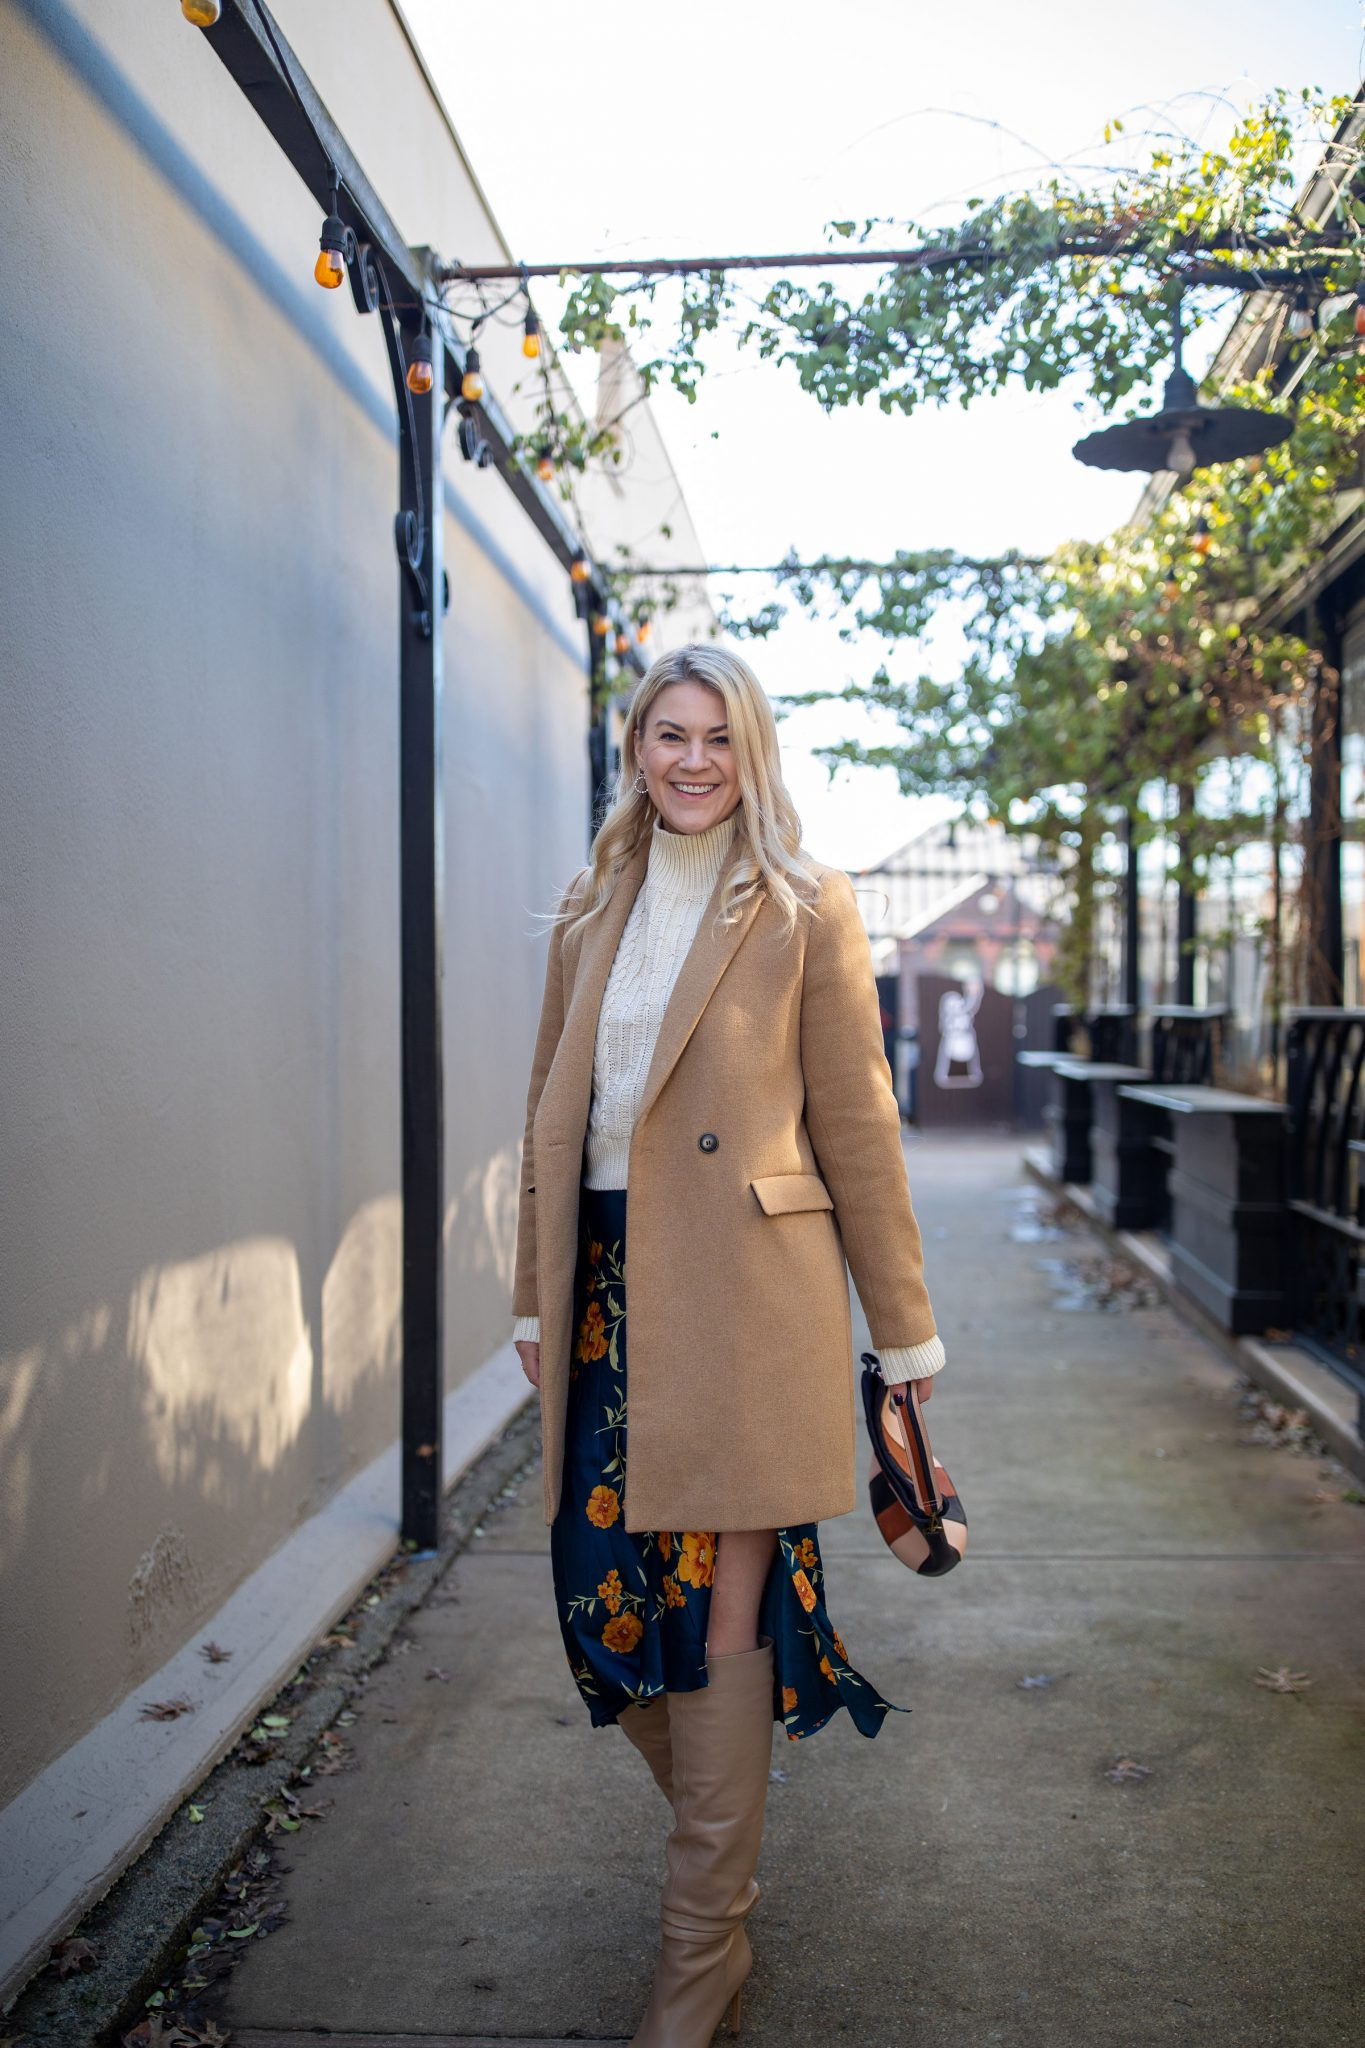 Slip Dress by popular Seattle tall fashion blog, Whit Wanders: image of a woman wearing a Zara camel coat, TopShop cable-knit turtleneck, Astr the Label slip dress, Vince Camuto OTK Boots, and carrying a Madewell purse.